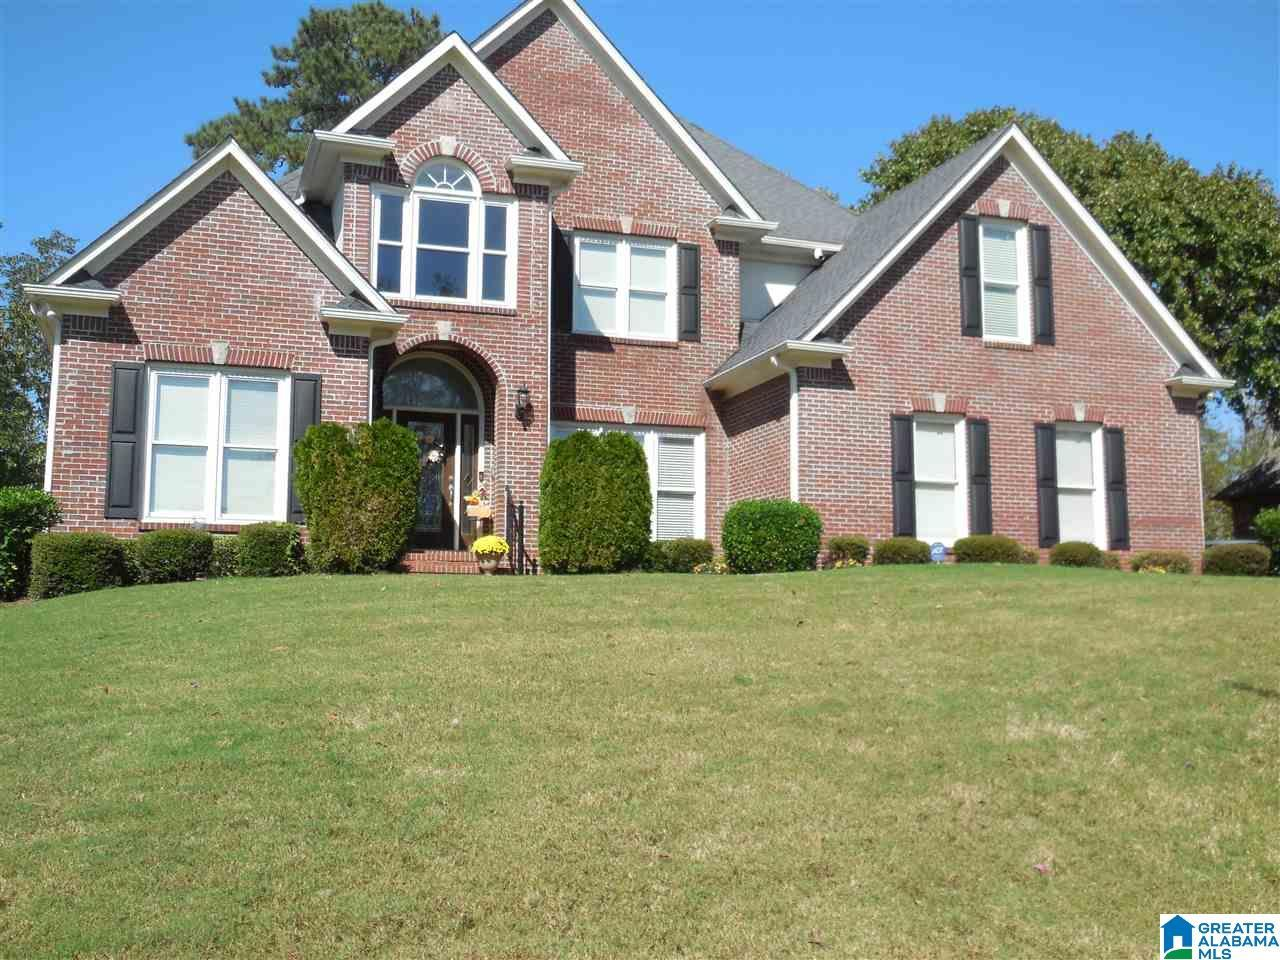 1685 LAKE CYRUS CLUB DR, Hoover, AL 35244 - #: 899378